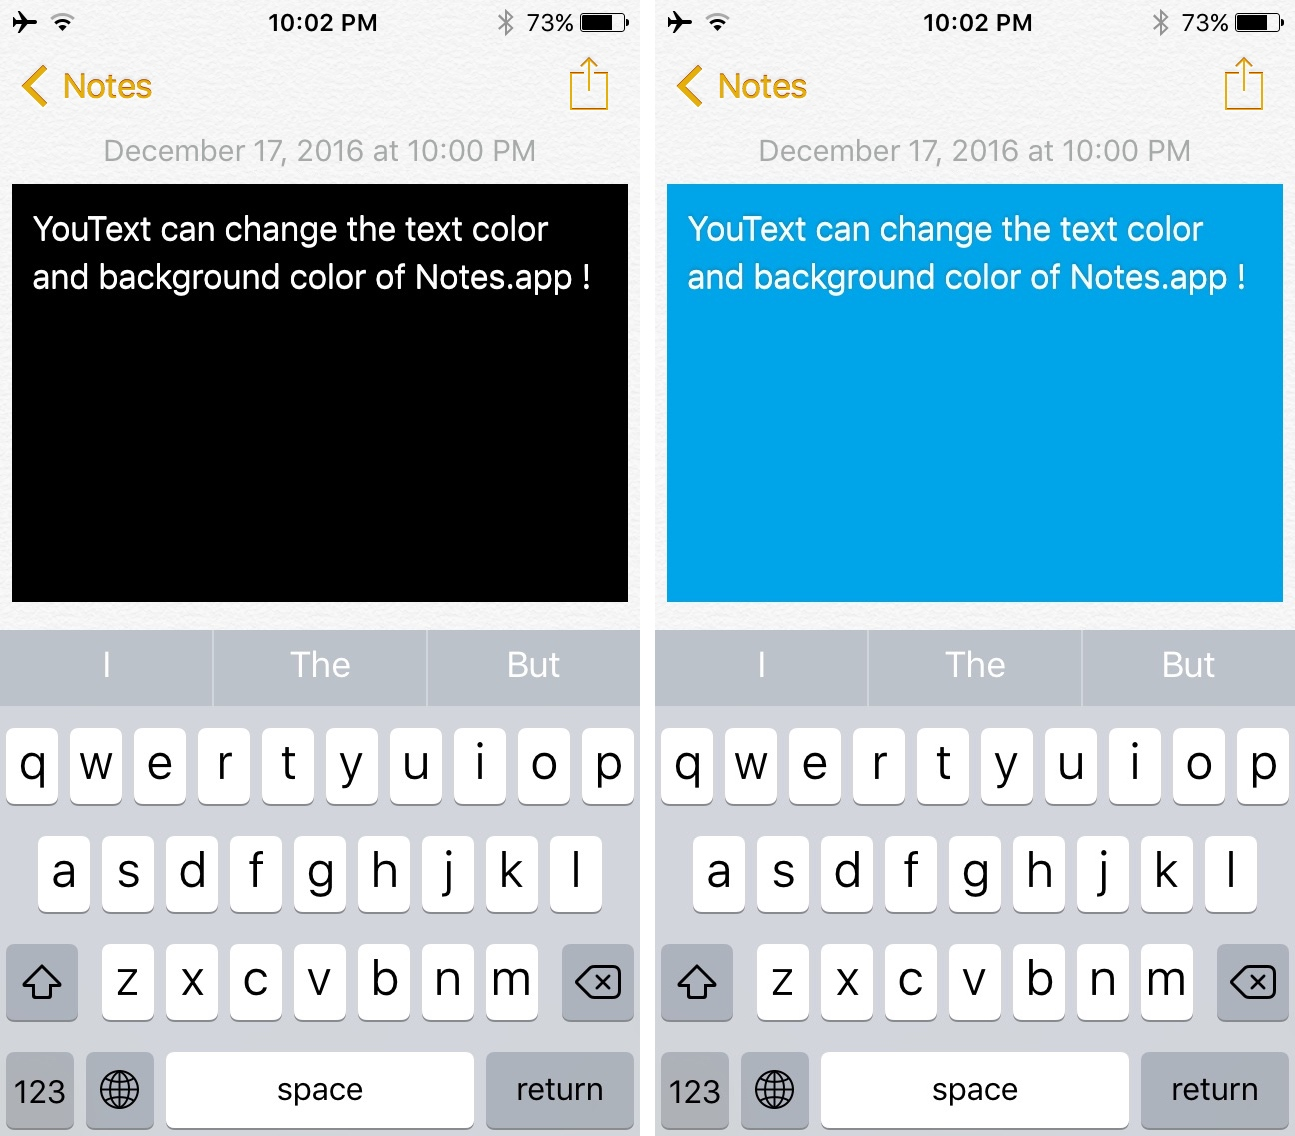 YouText Notes App Color Background Change